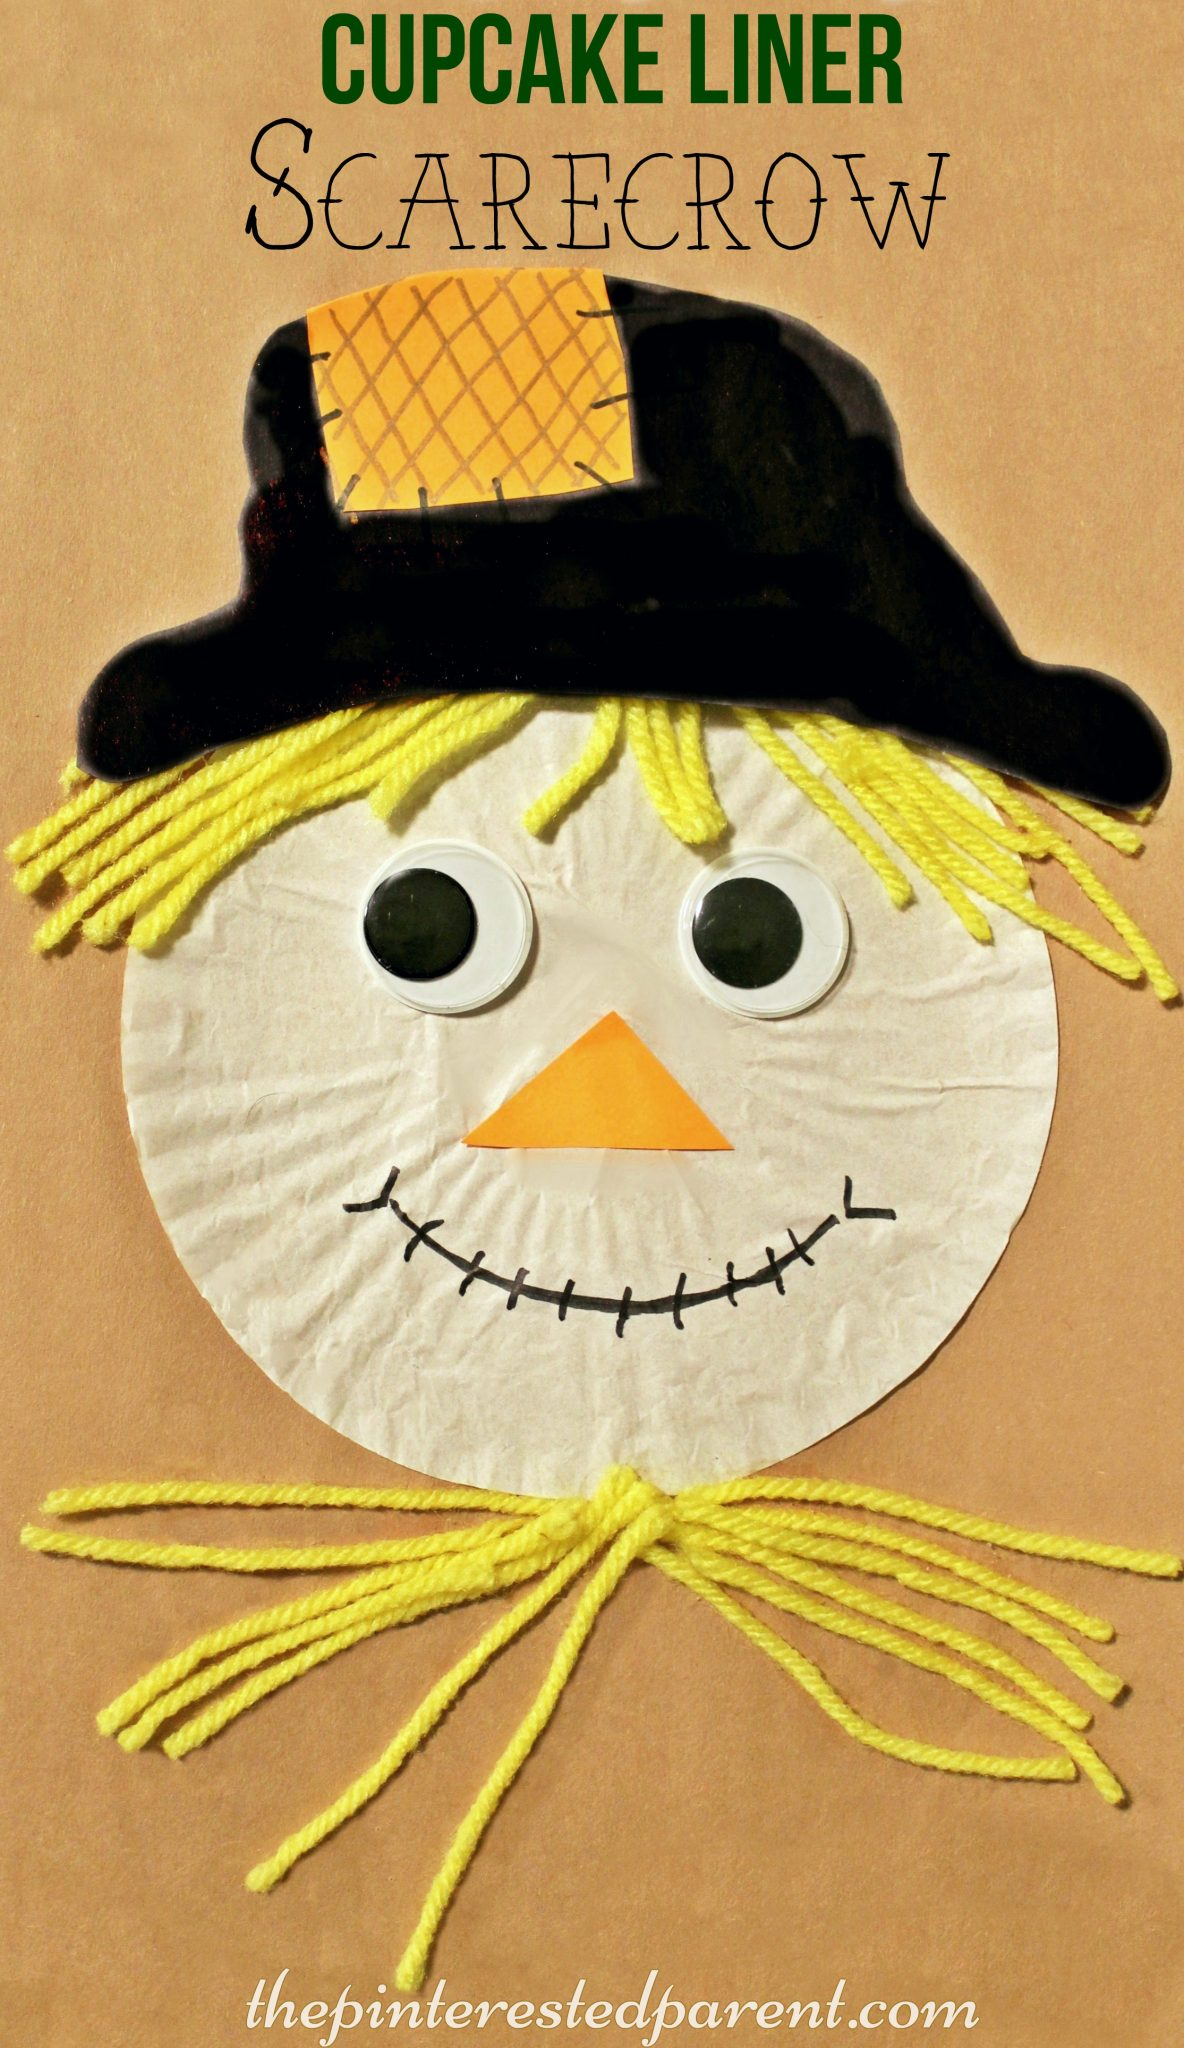 Cupcake liner scarecrow the pinterested parent for November arts and crafts for daycare